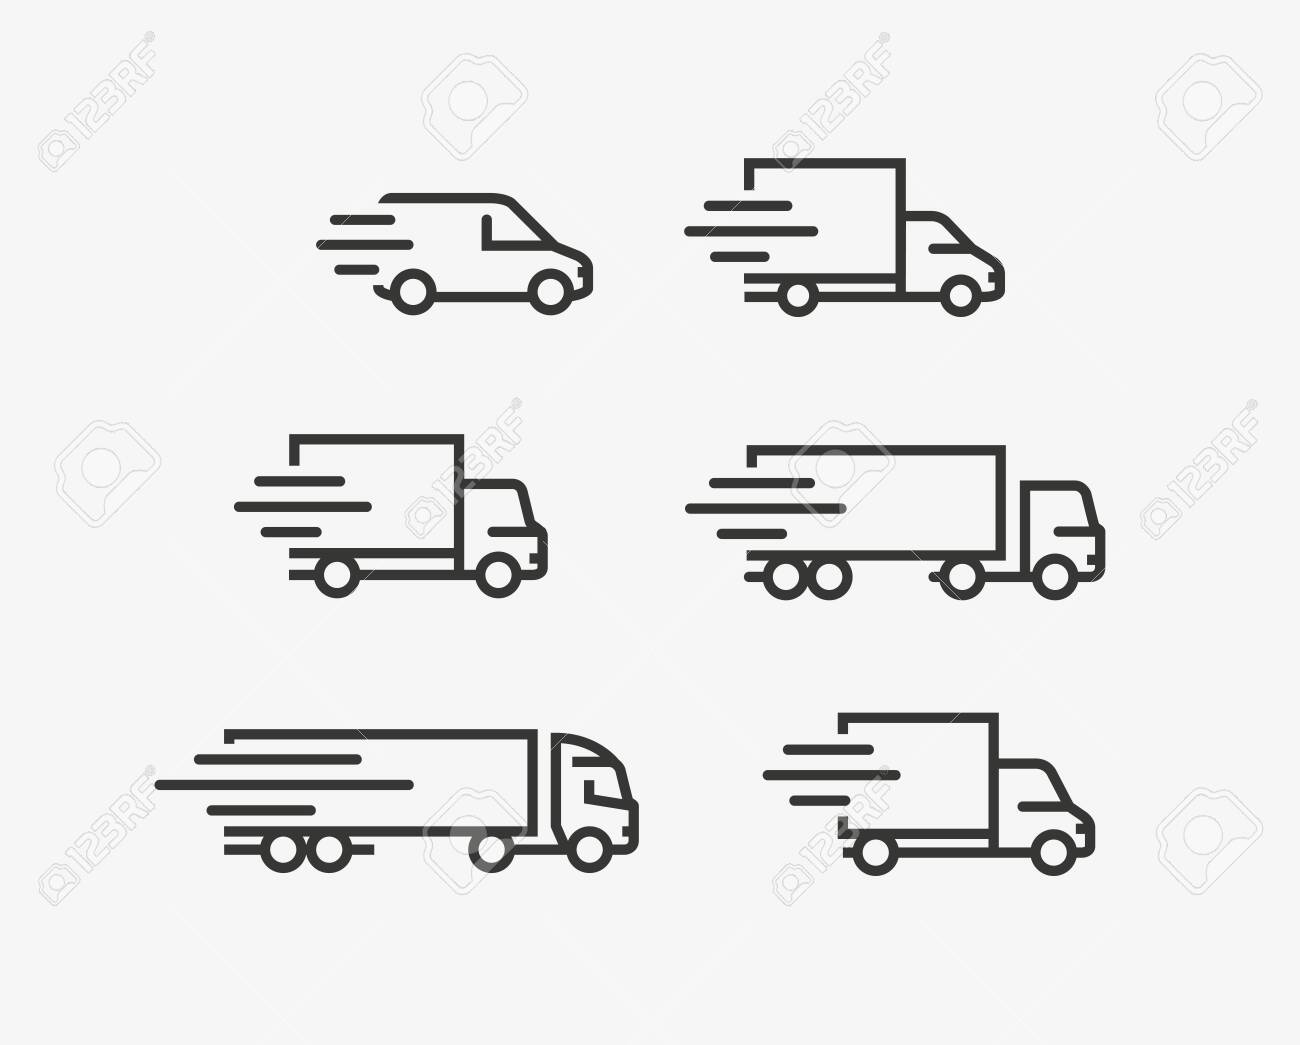 Truck icon set. Freight, delivery symbol. - 130492396